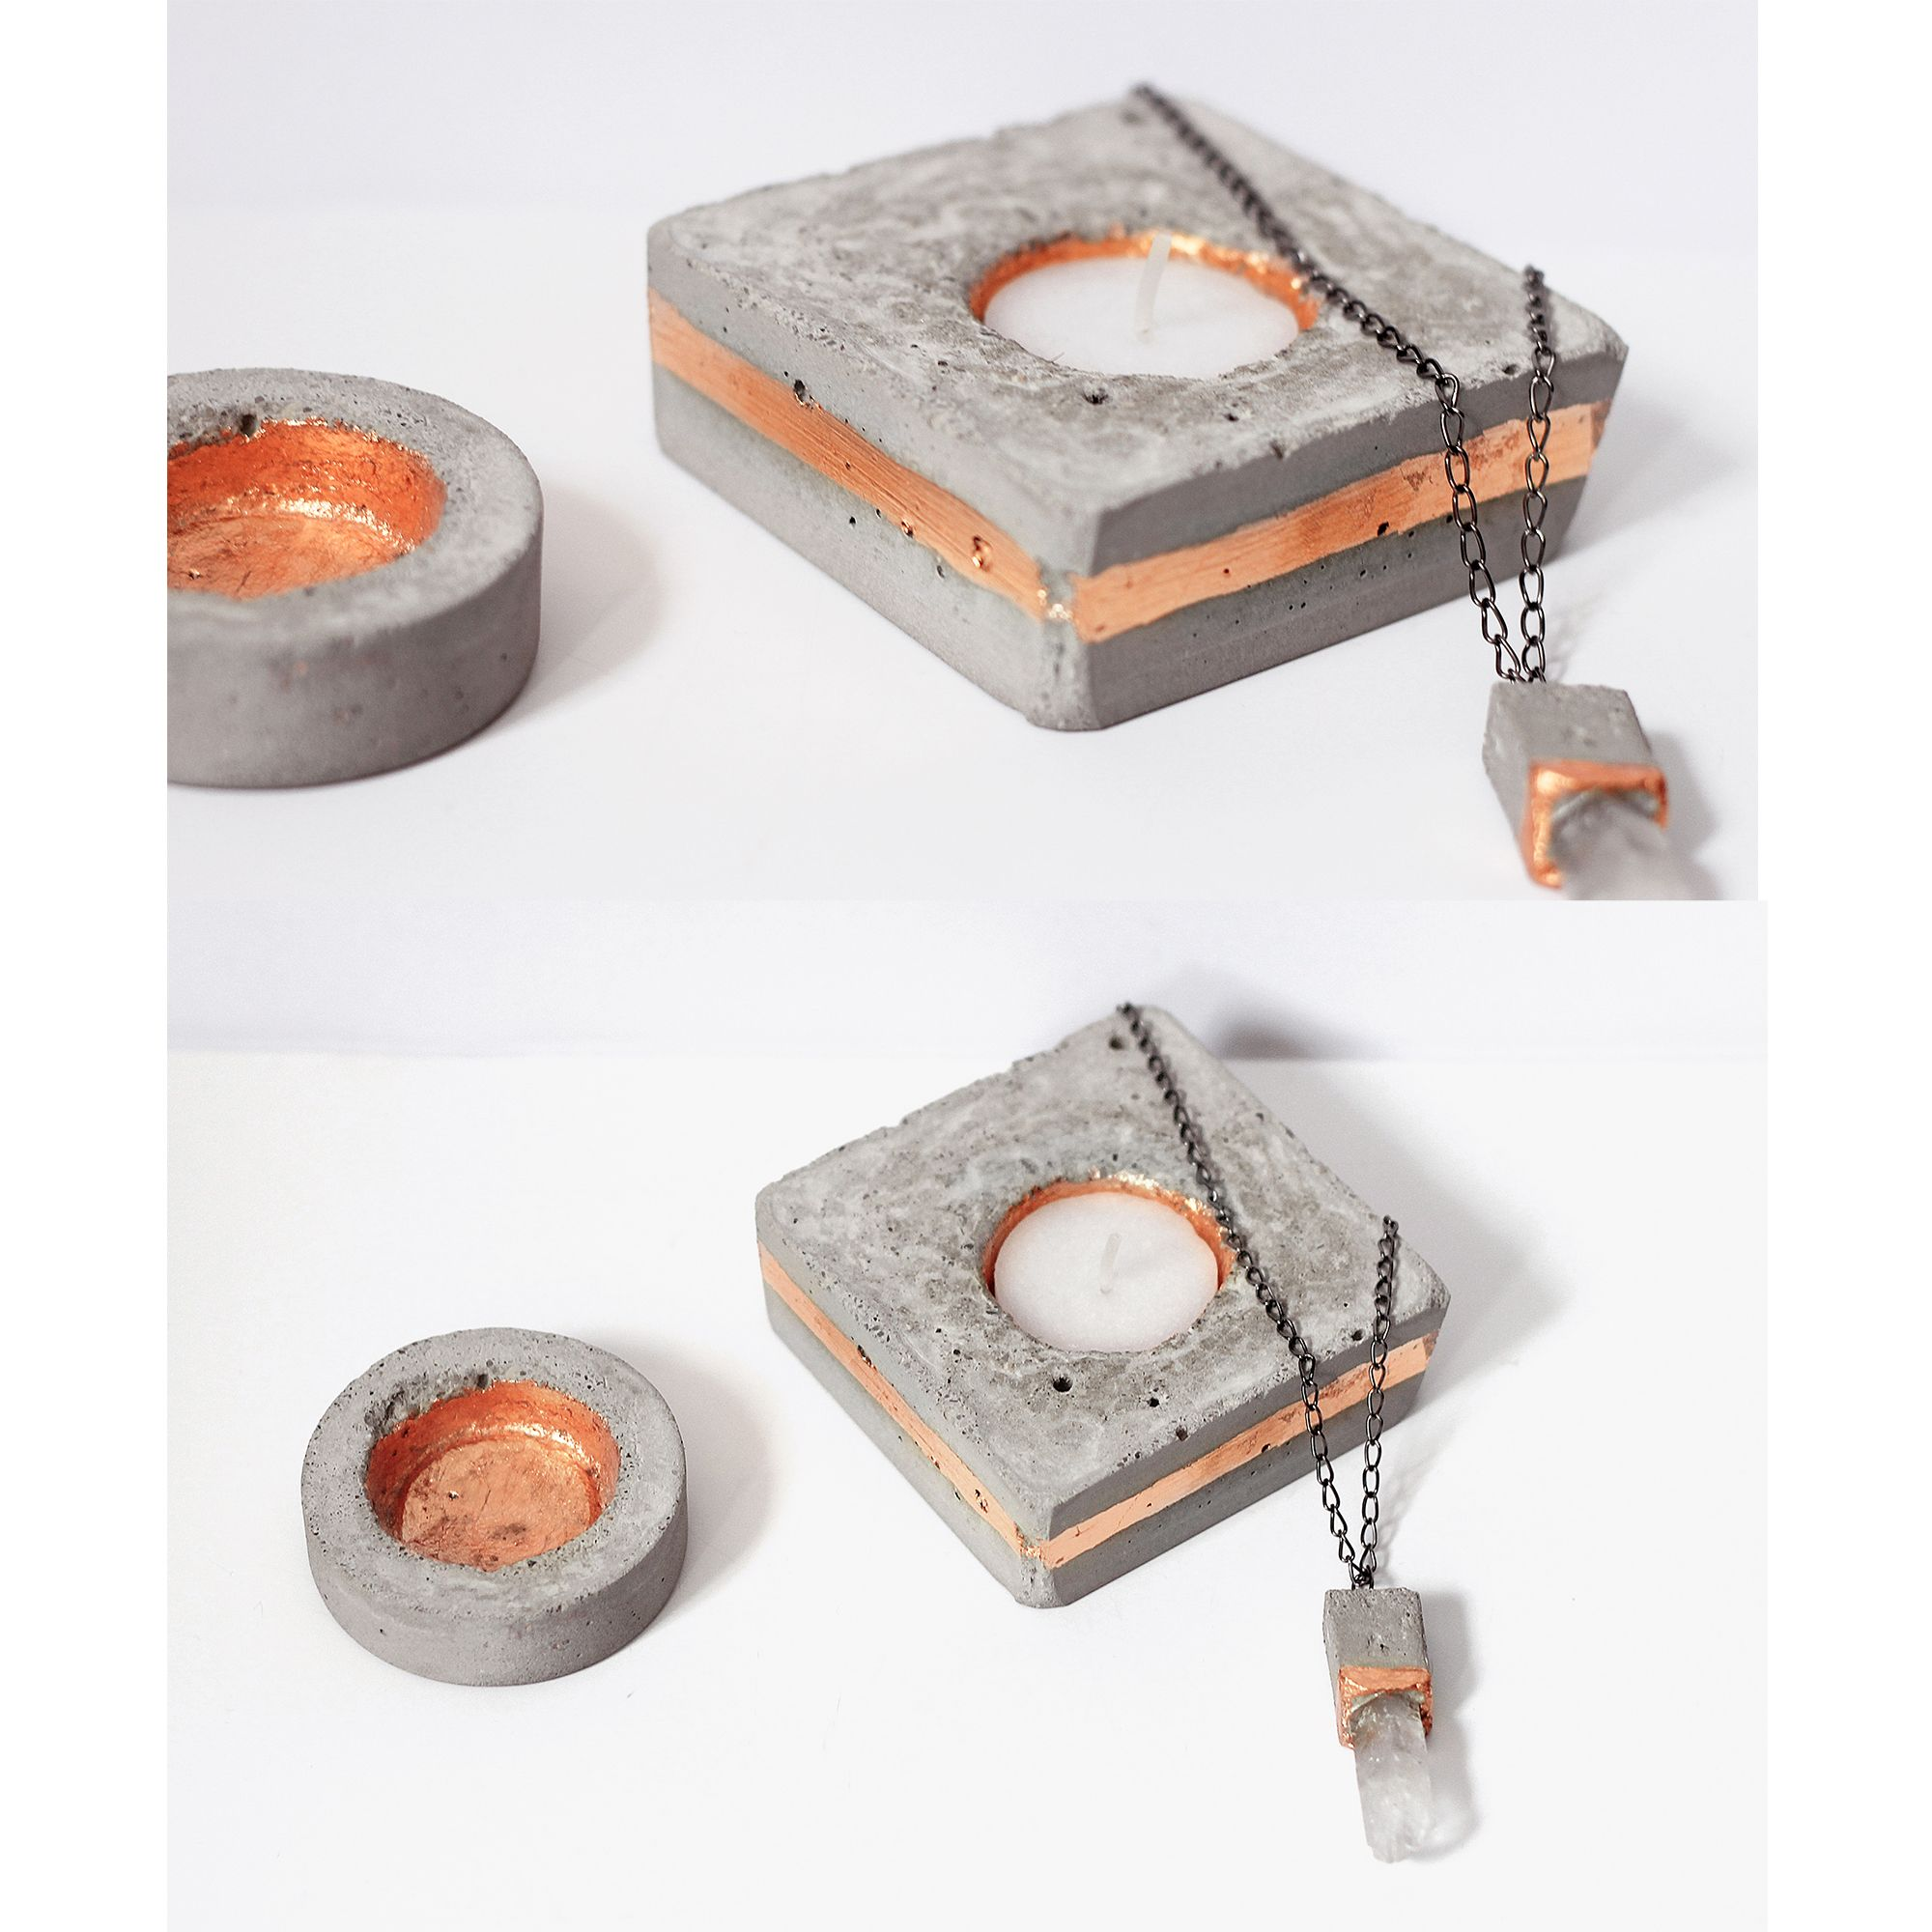 DIY concrete cement cooper candle socket - stone jewelry design